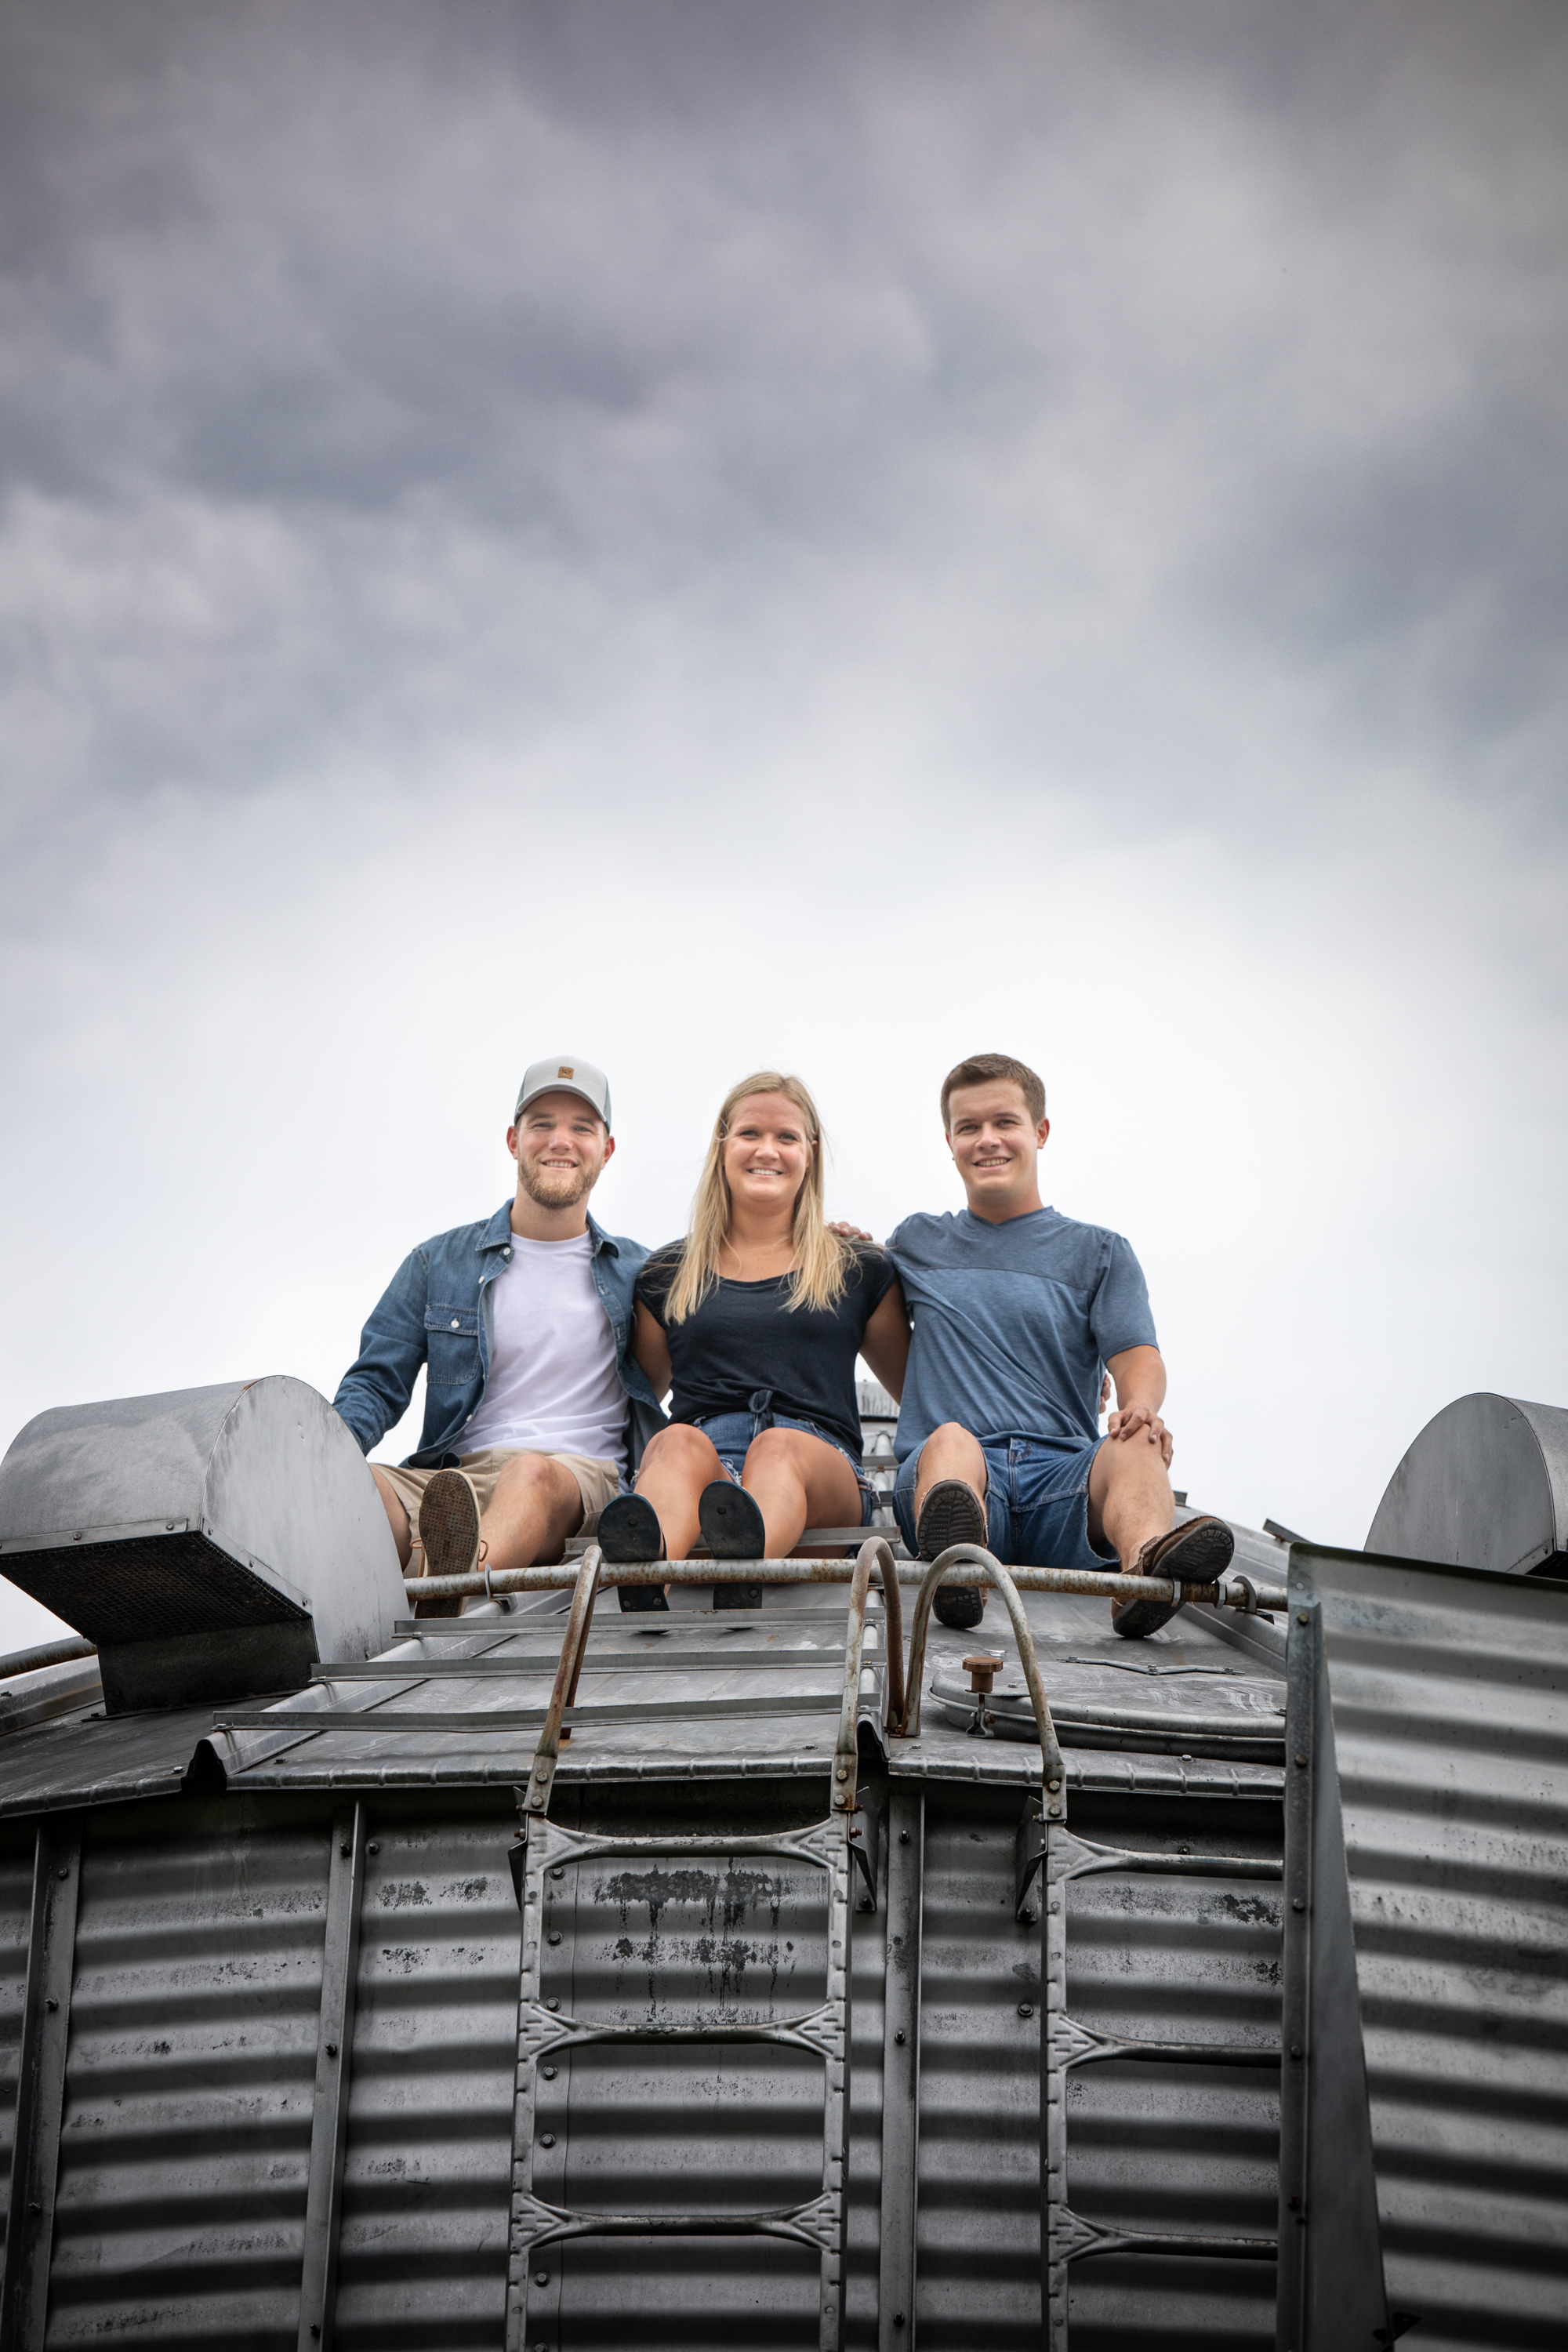 Family-agricultural-photographer-jodie-aldred-photography-rural-country-farm-farmers-ontario-london-huron-middlesex-elgin-chatham-elgin-rural-country-outdoors-grain-bin-farmers-sky.jpg